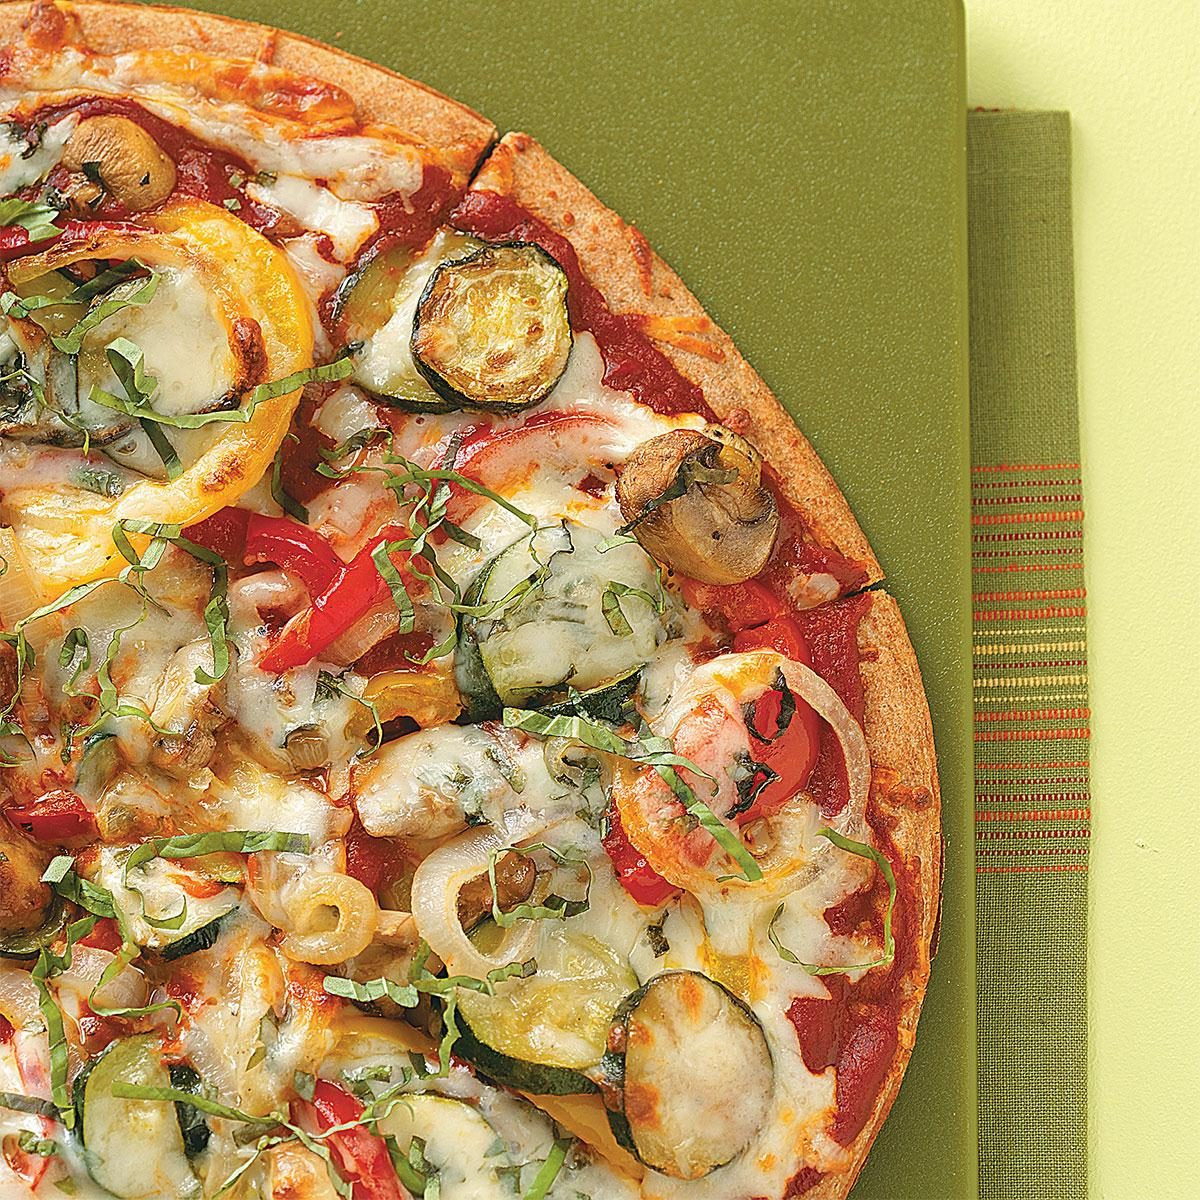 Grilled Veggie Pizza Recipe | Taste of Home